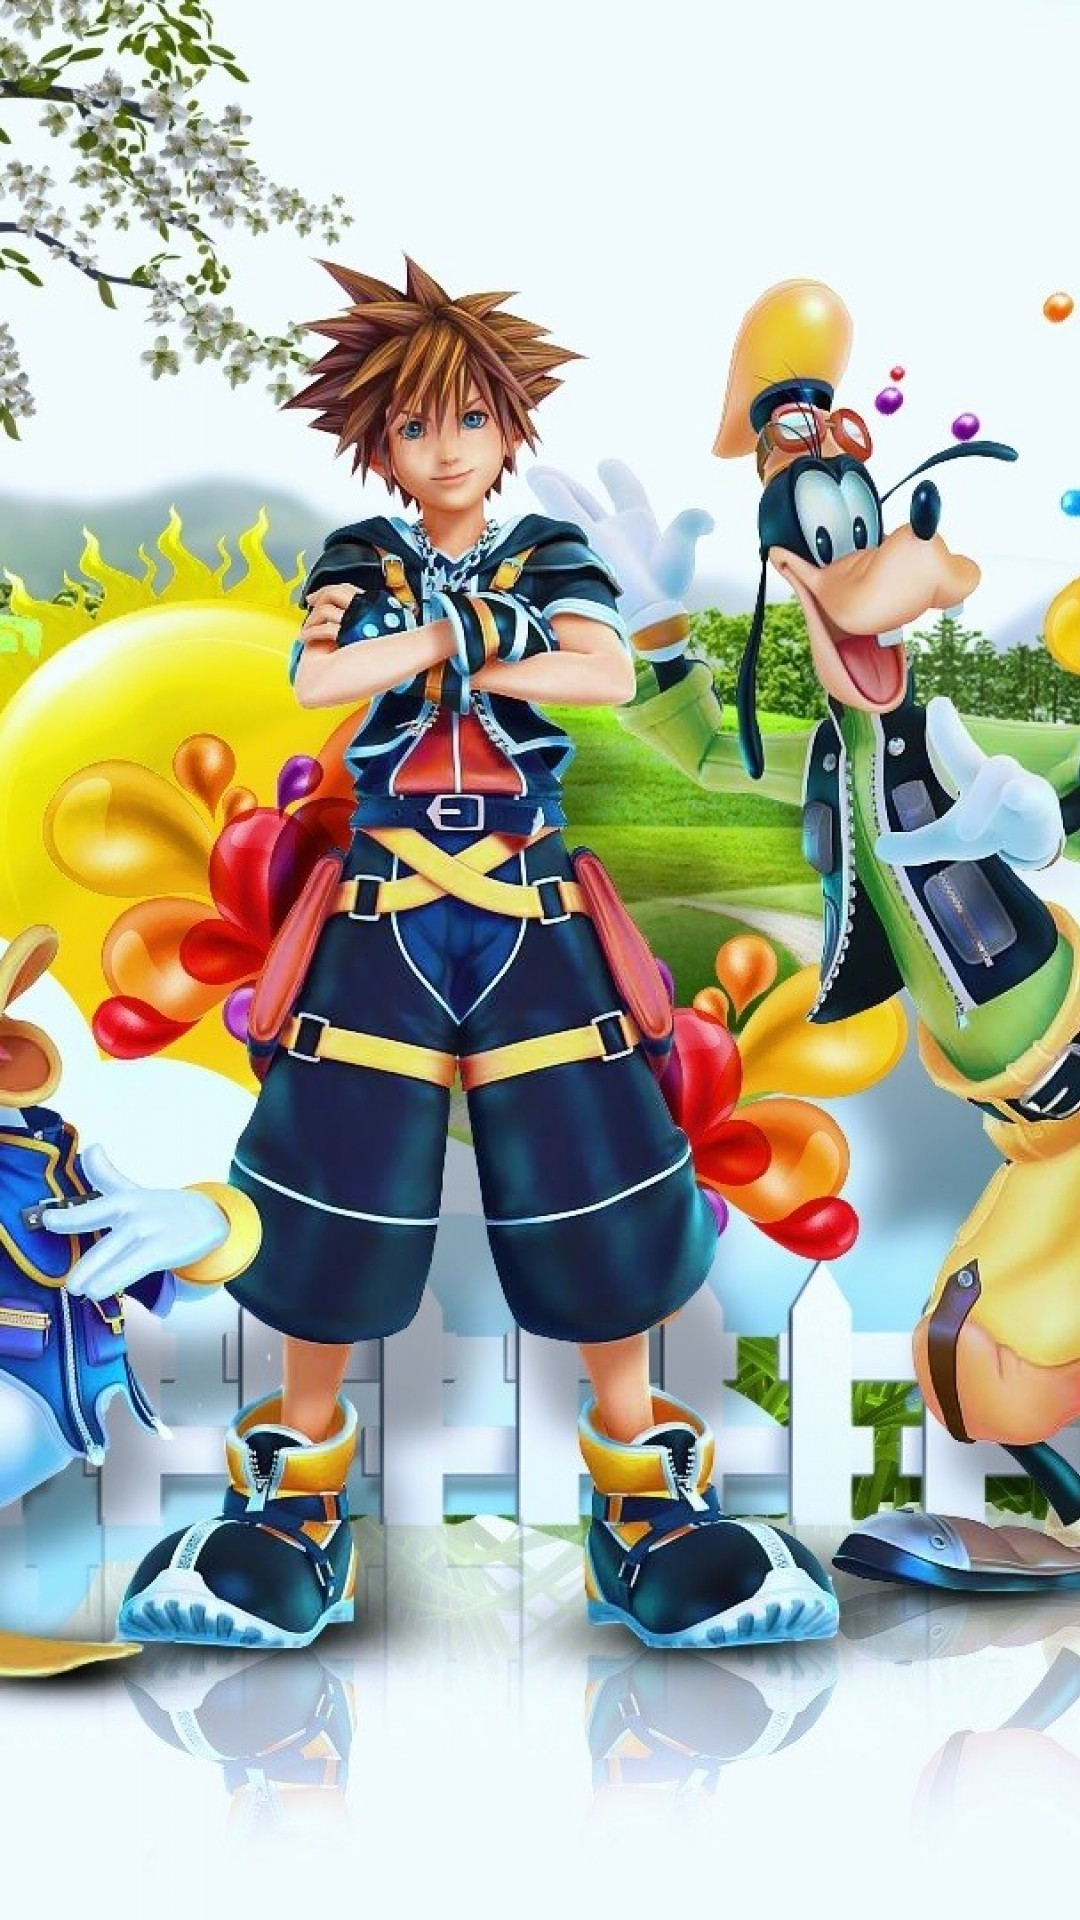 1080x1920 Kingdom Hearts IPhone Wallpaper For 6 Plus